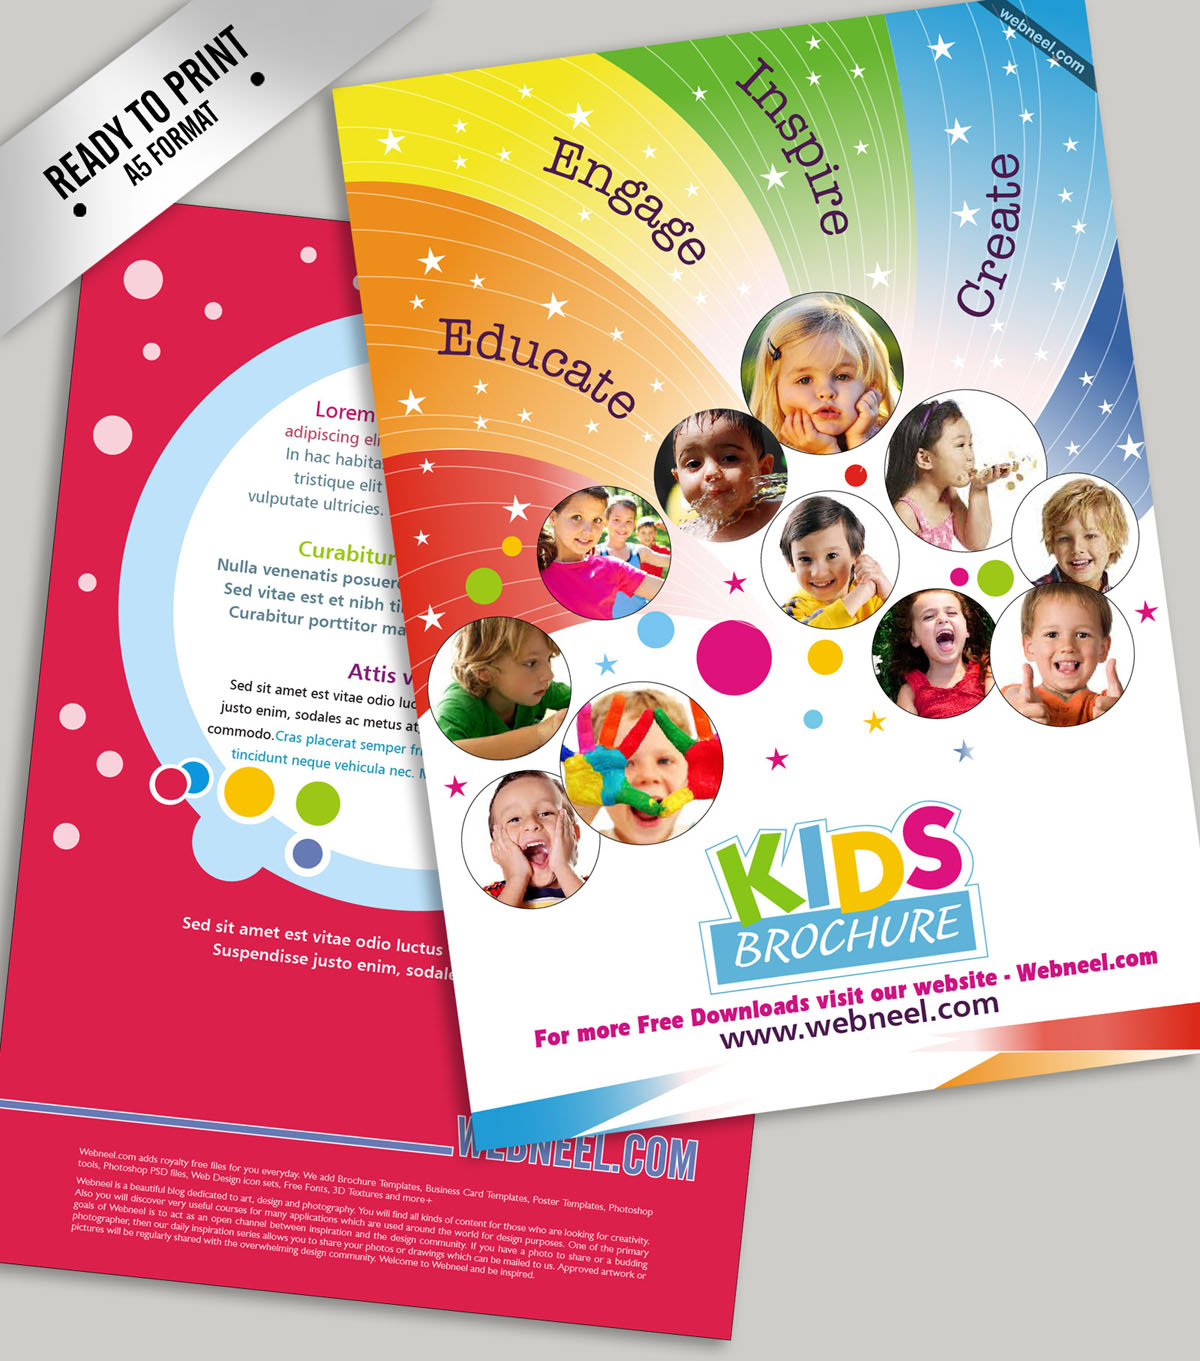 8 education kids colorful bifold brochure template for Free brochure templates for kids